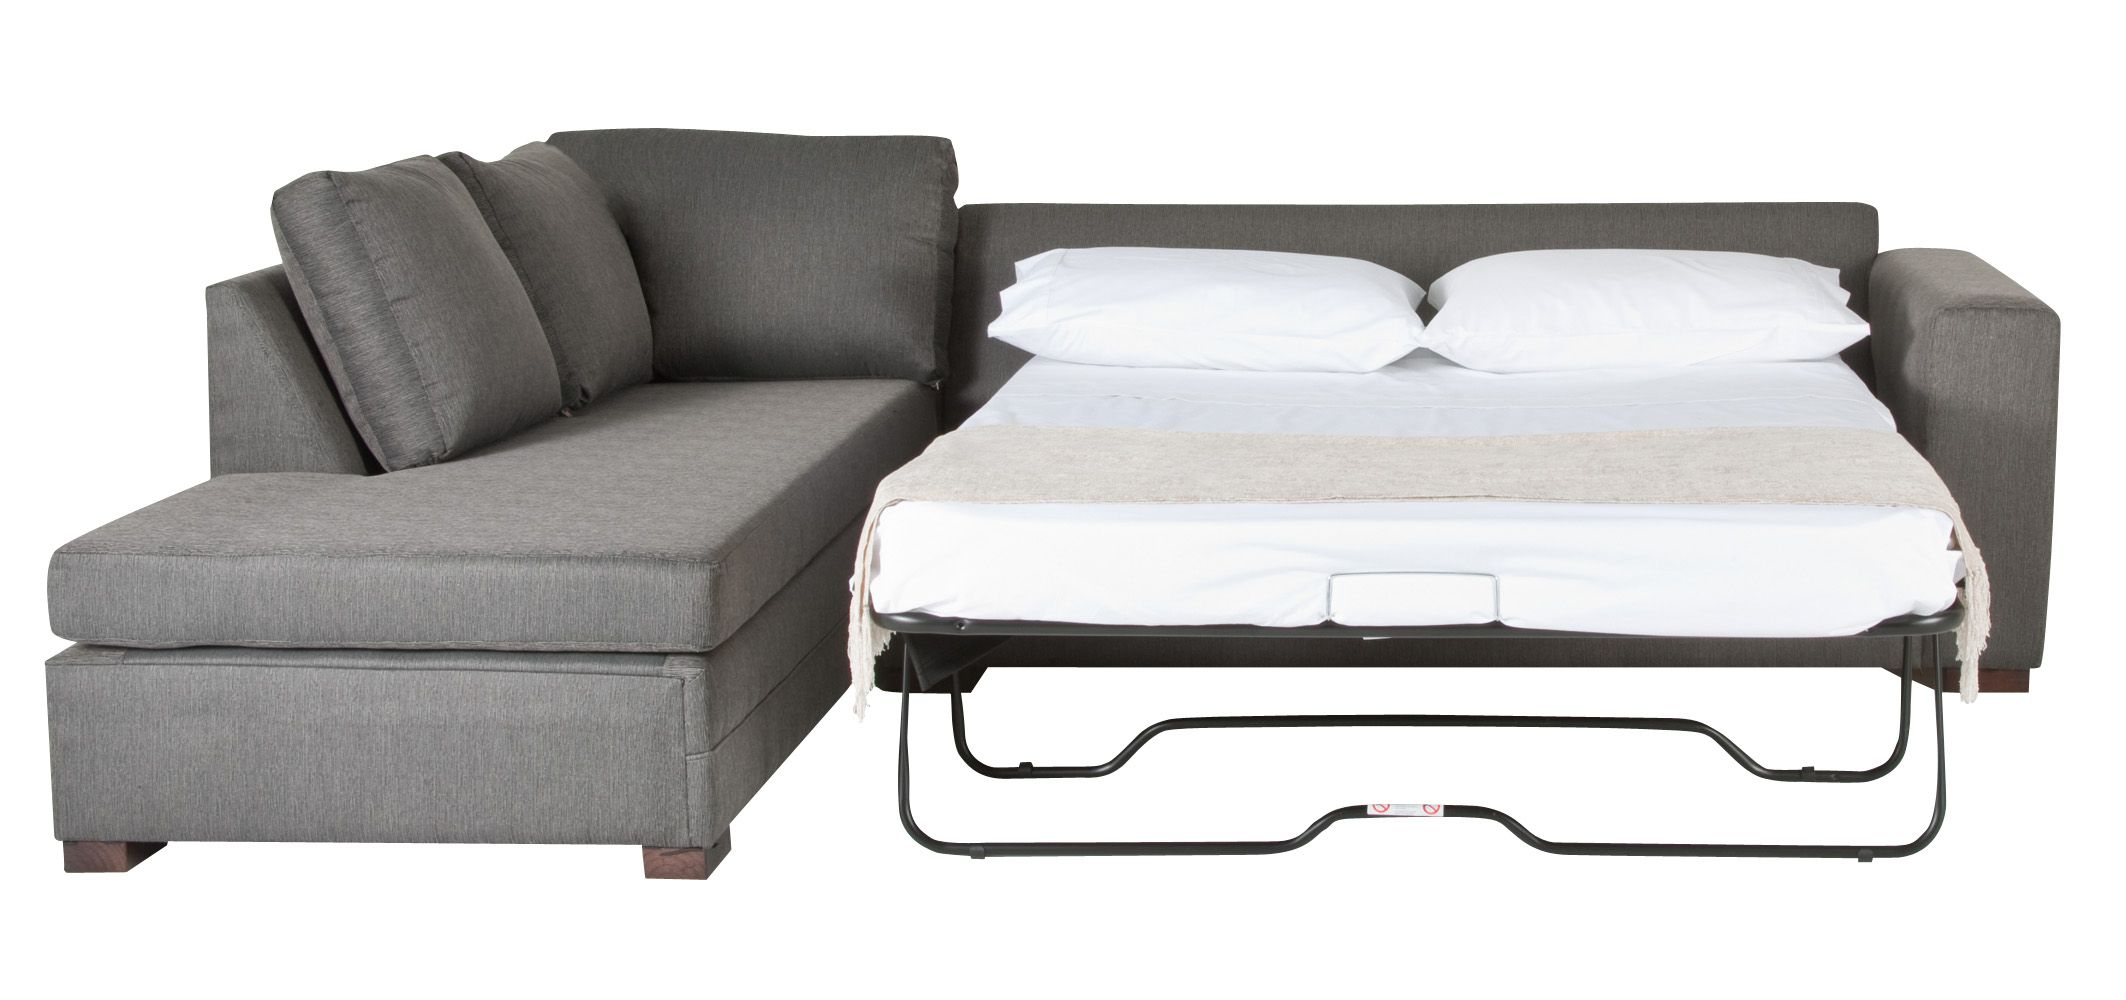 Picturesque Gray Fabric Sleeper Couch With Pull Out Bed White Mattress Covers As Inspiring Small E Furnishing Designs